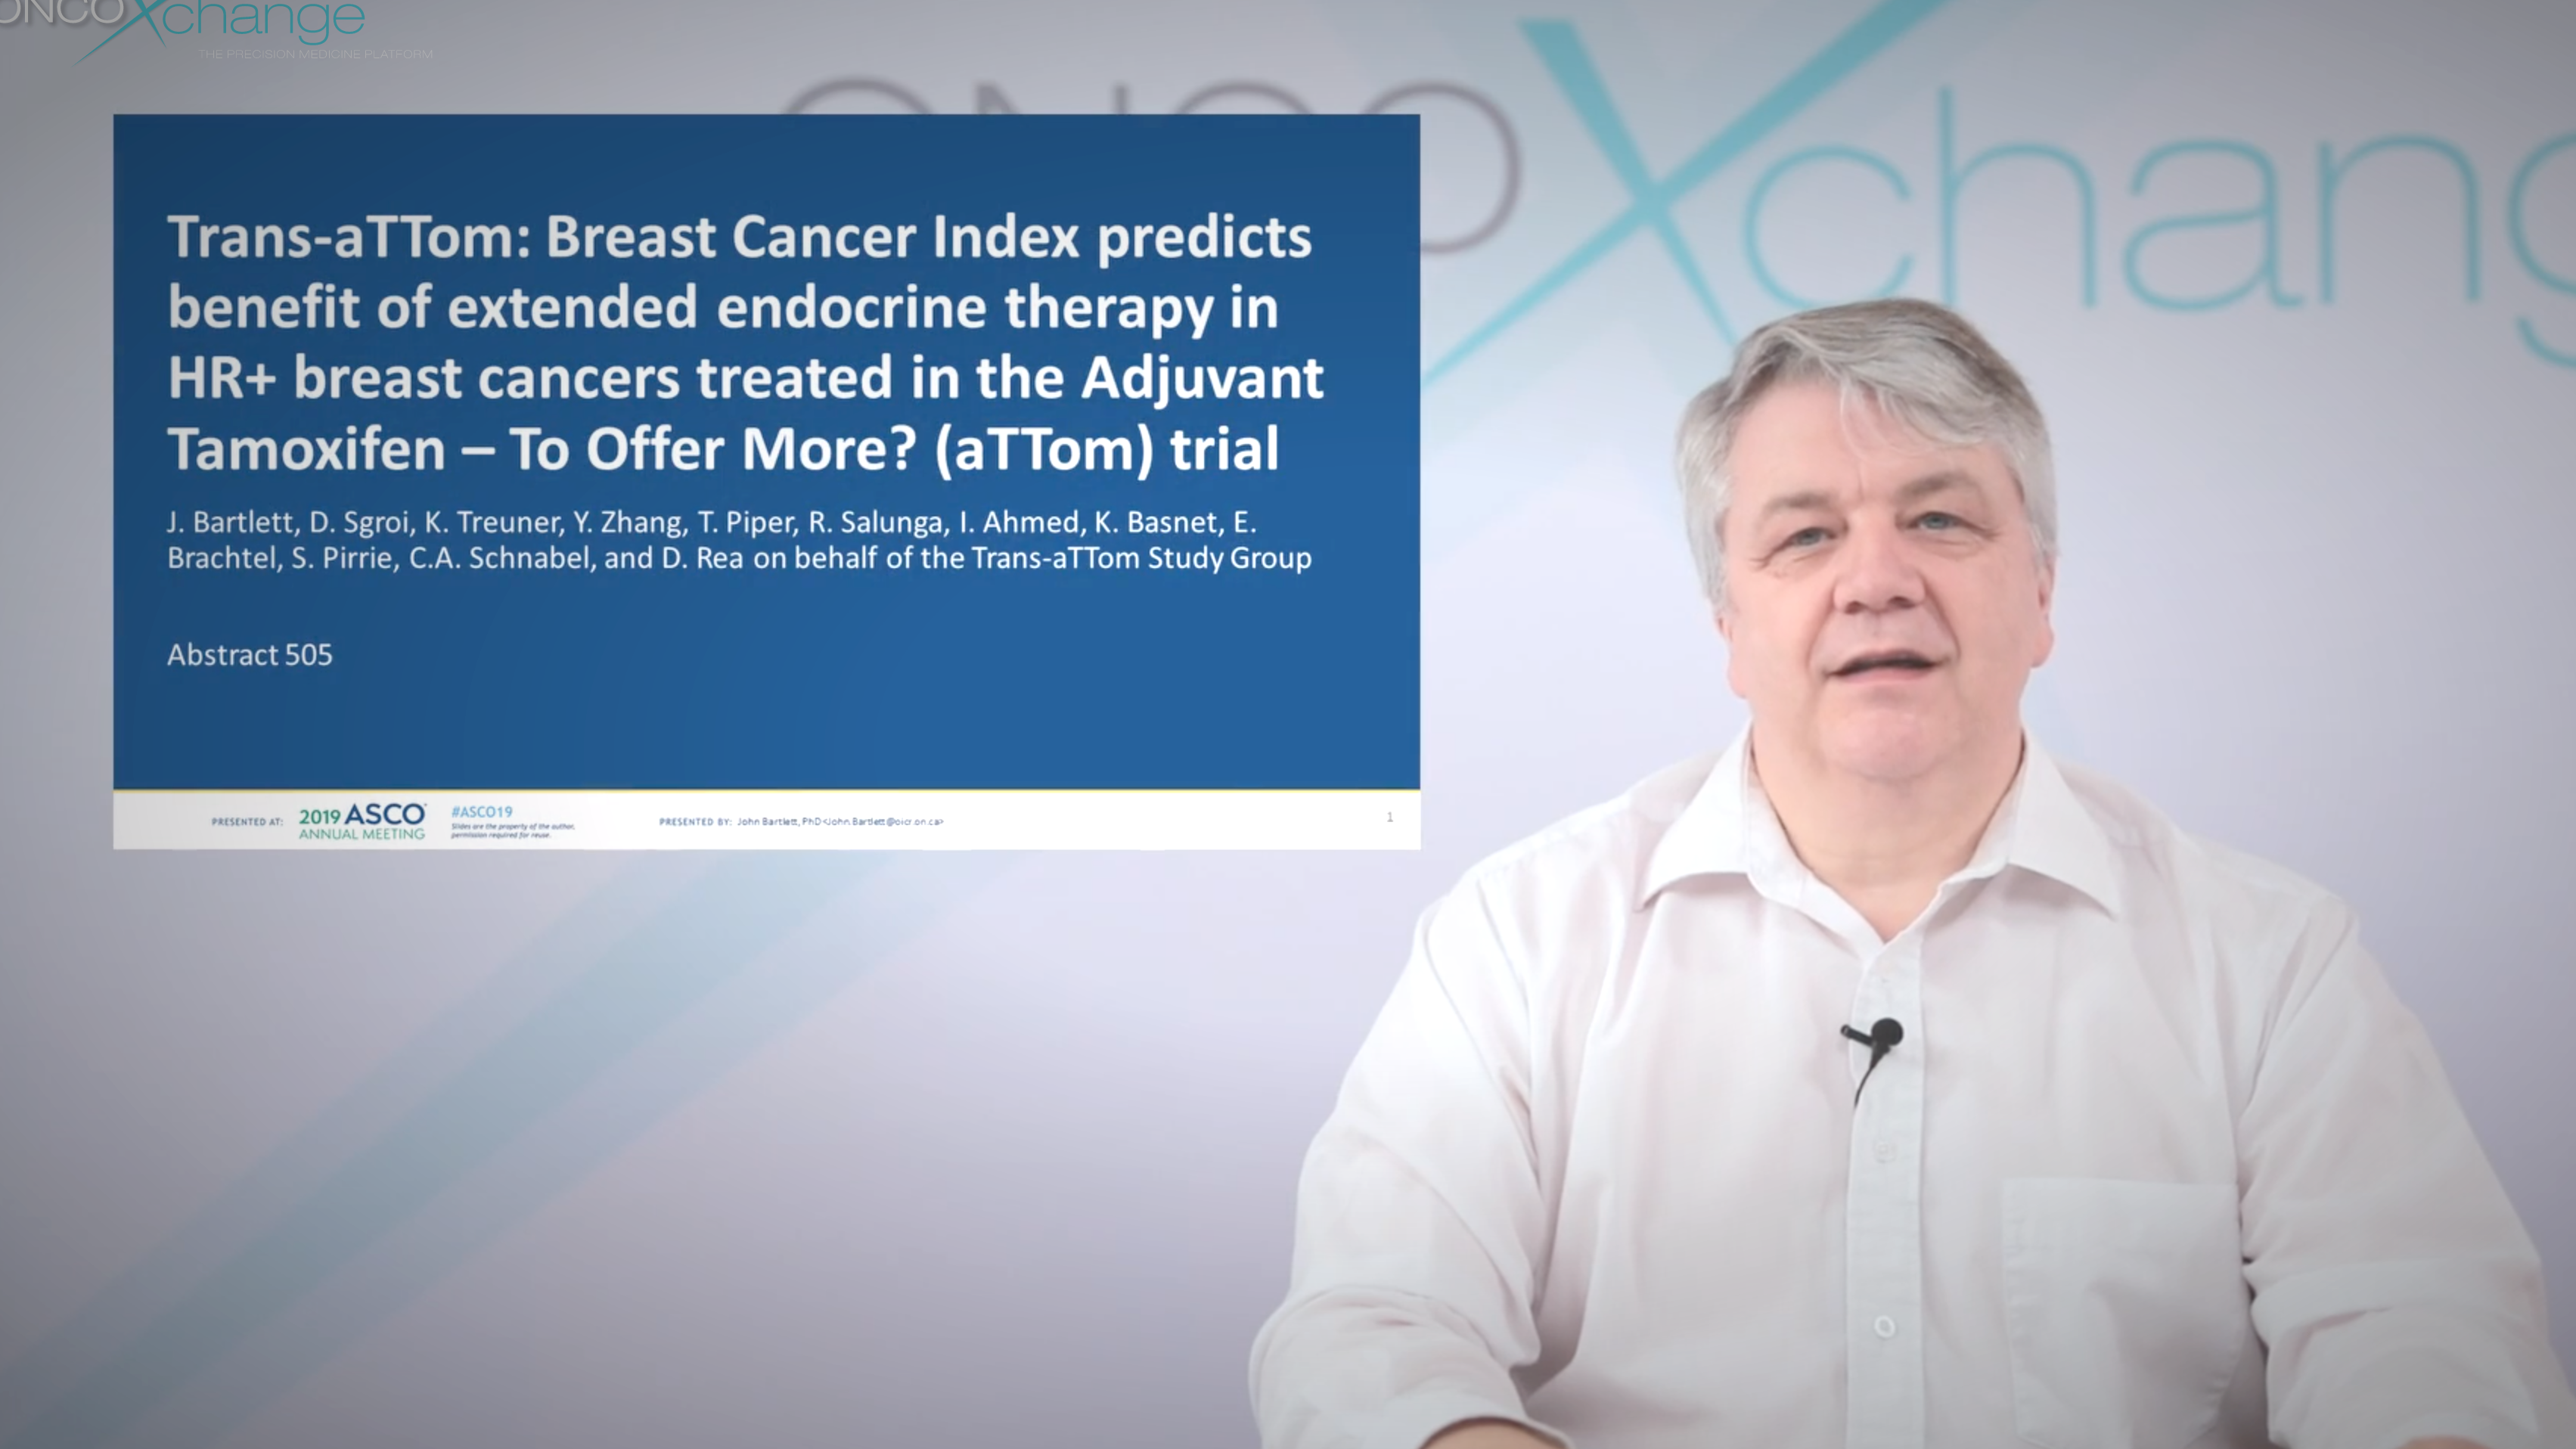 Trans-aTTom trial: To offer more?